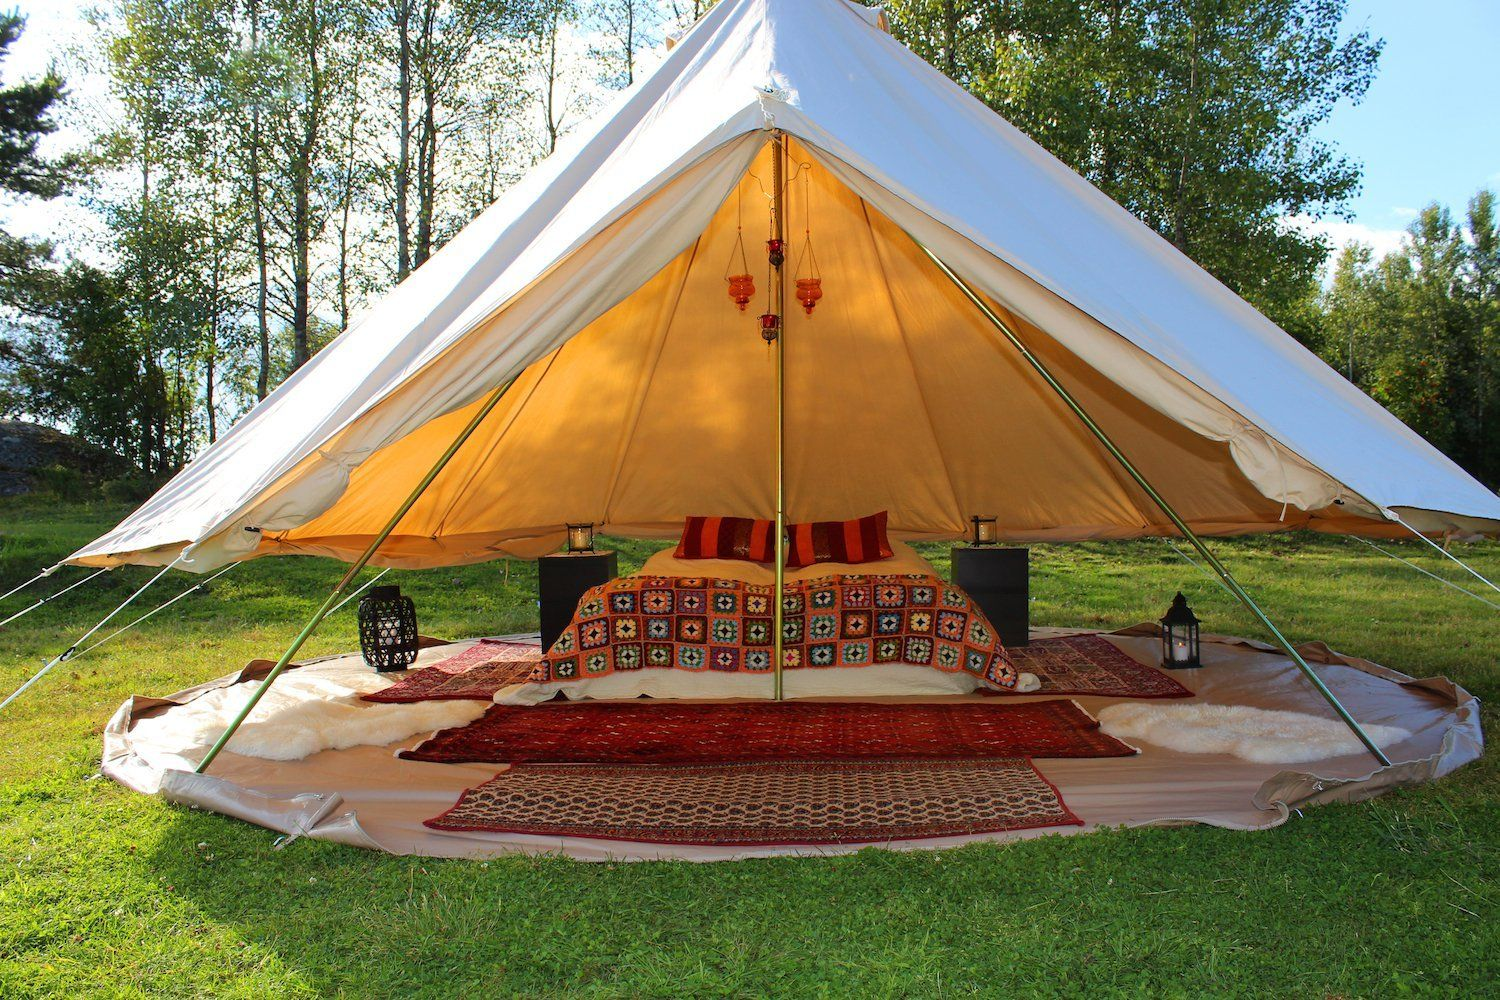 Amazon.com: Camping Canvas Bell Tent Sibley Tent Luxury ...